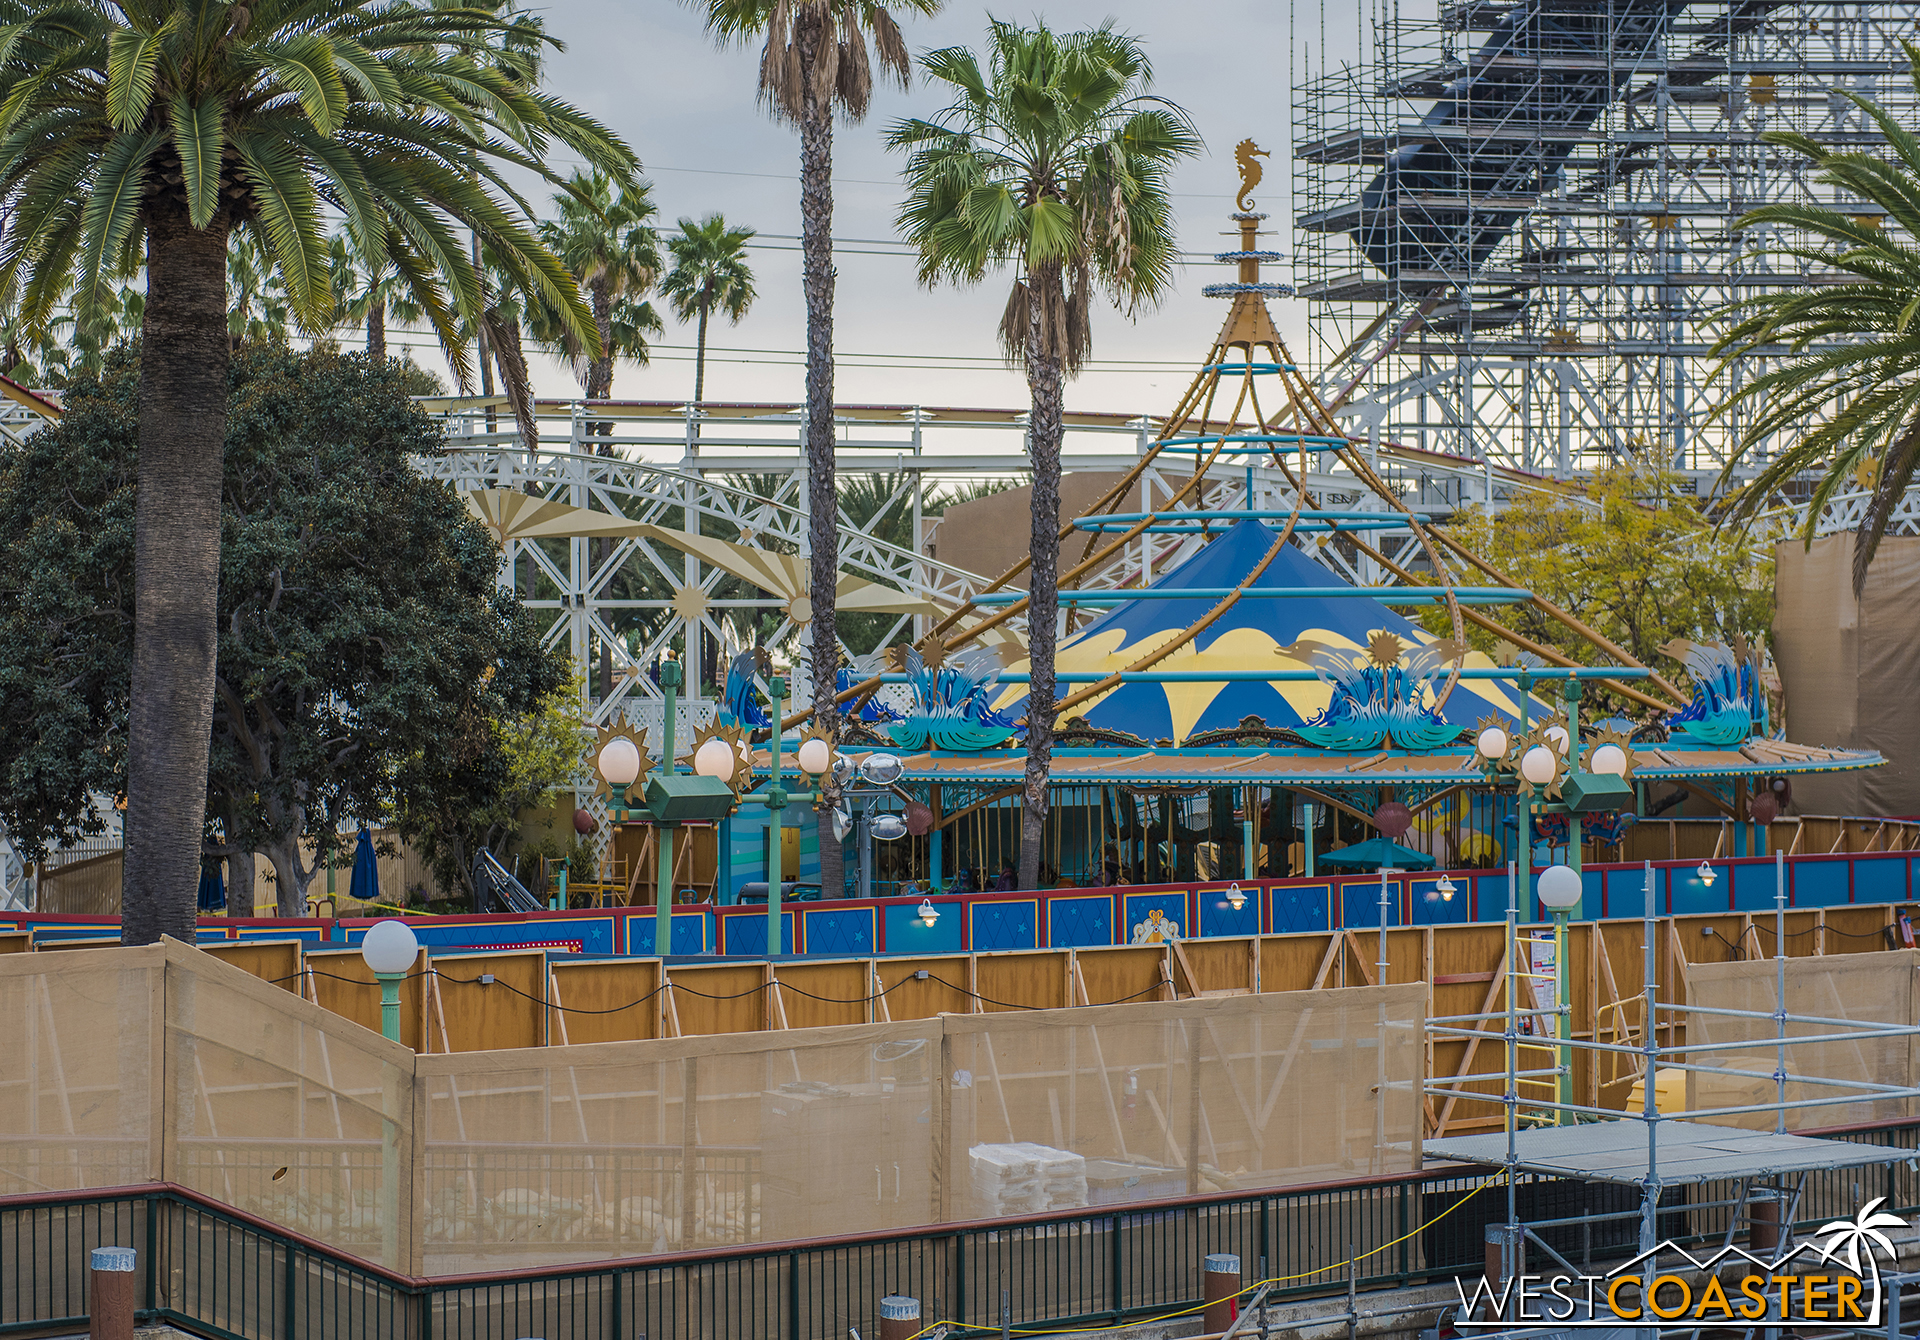 Over at the former Triton's Undersea Carousel, things still look aquatic.